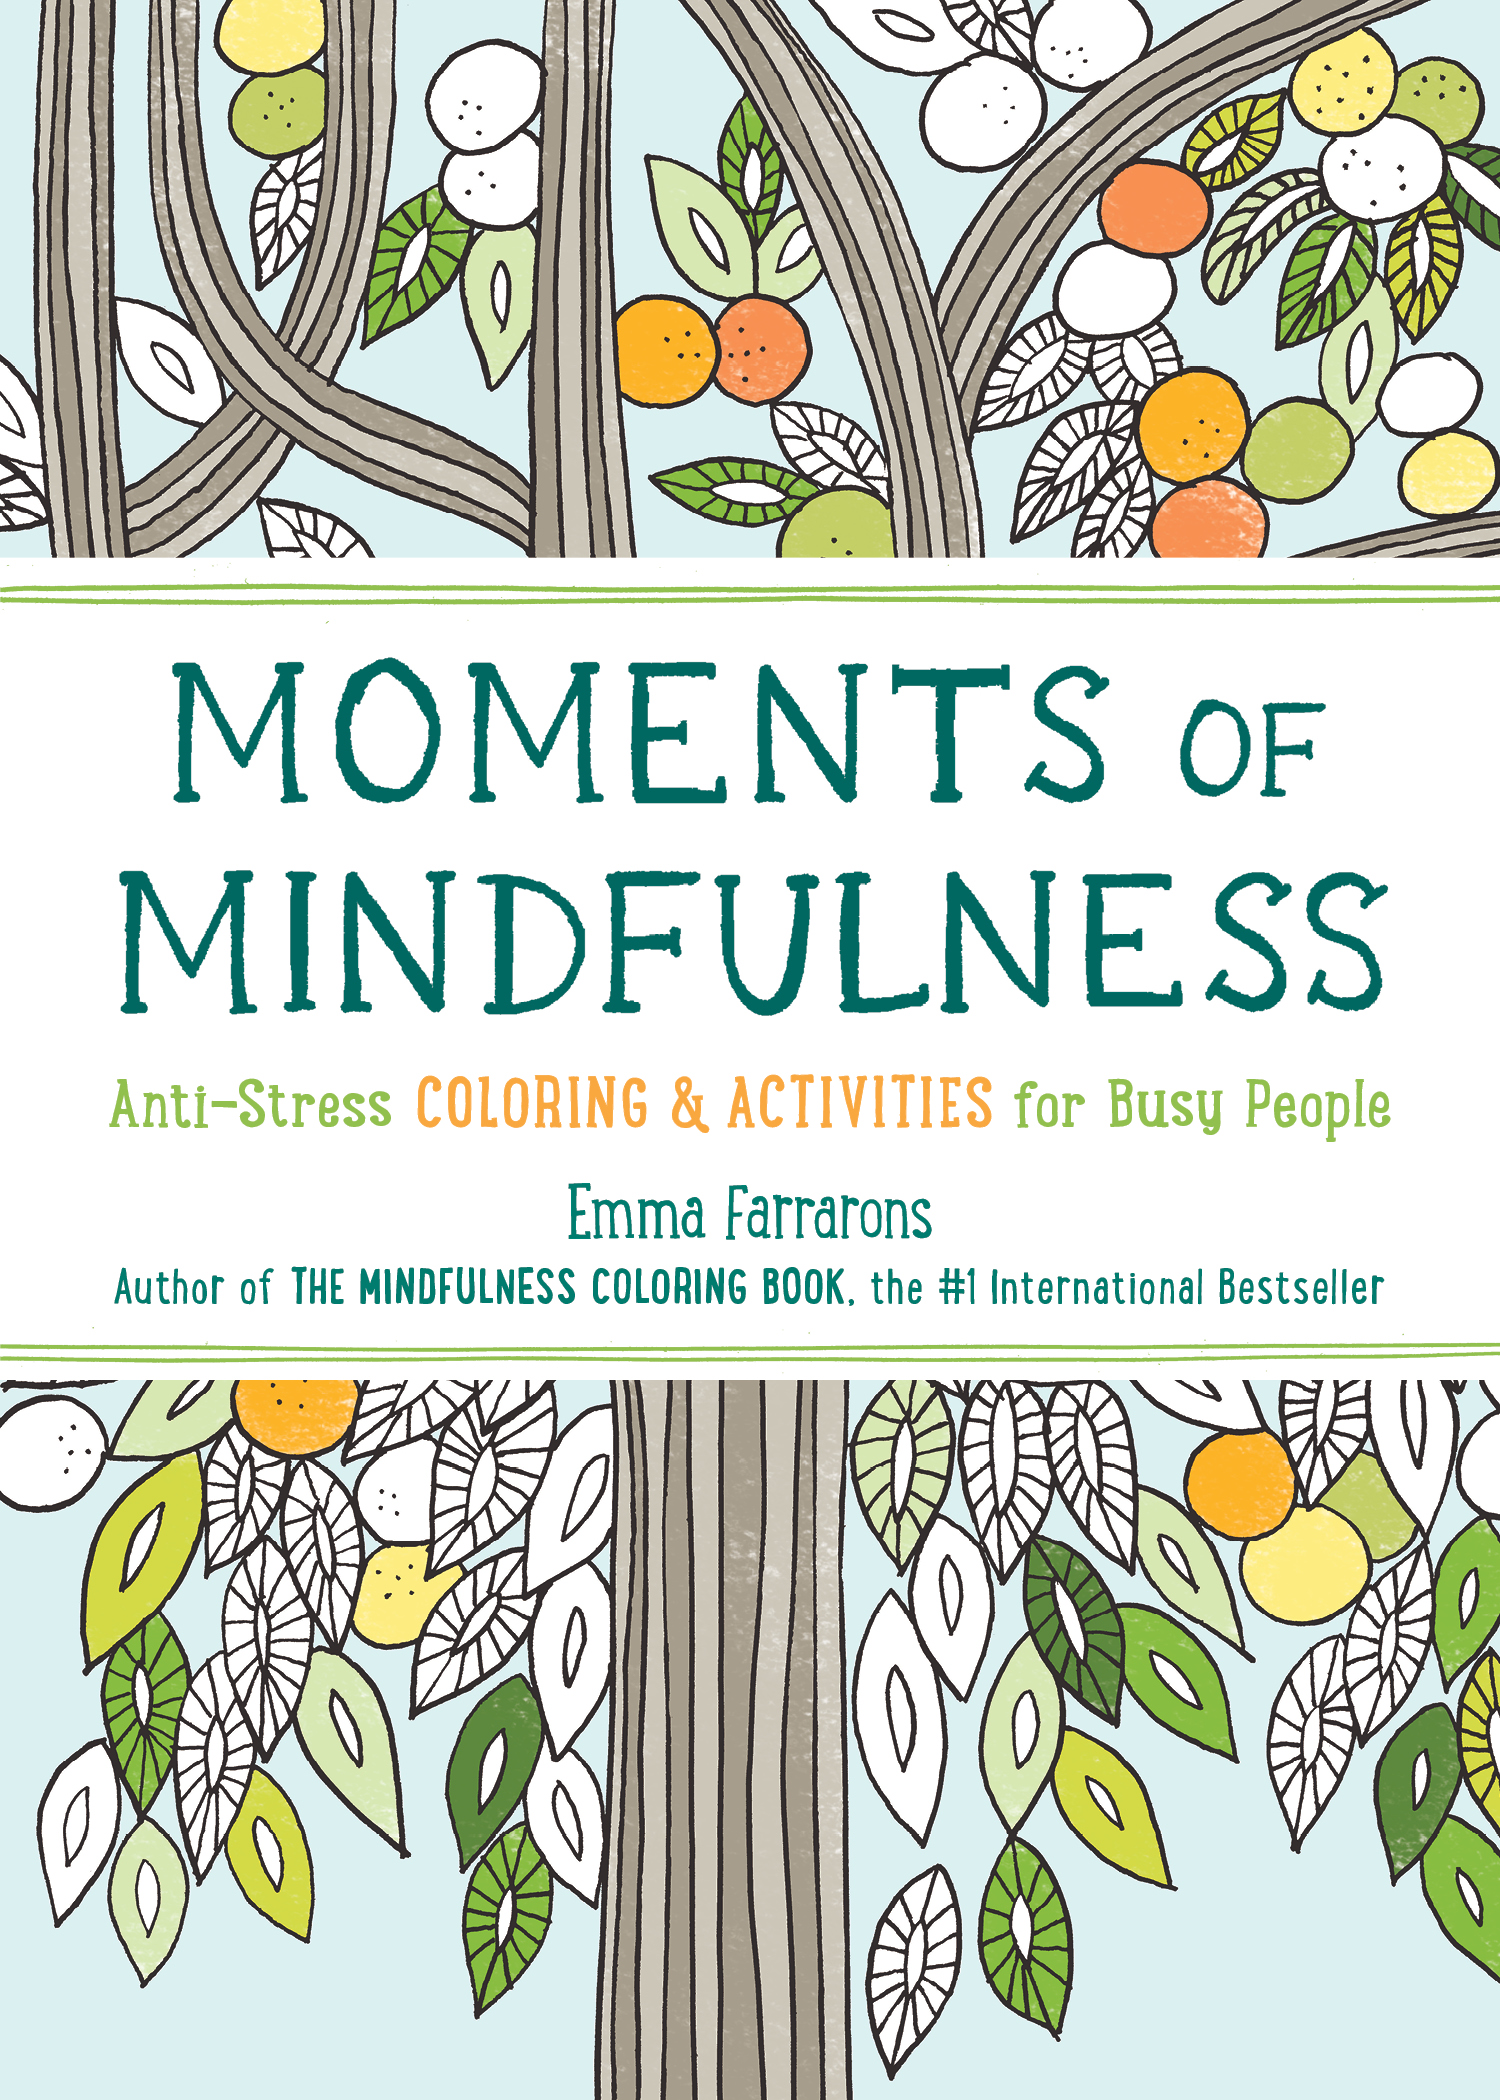 San Francisco Book Review Mindfulness Coloring Series Two Counter Displays Available